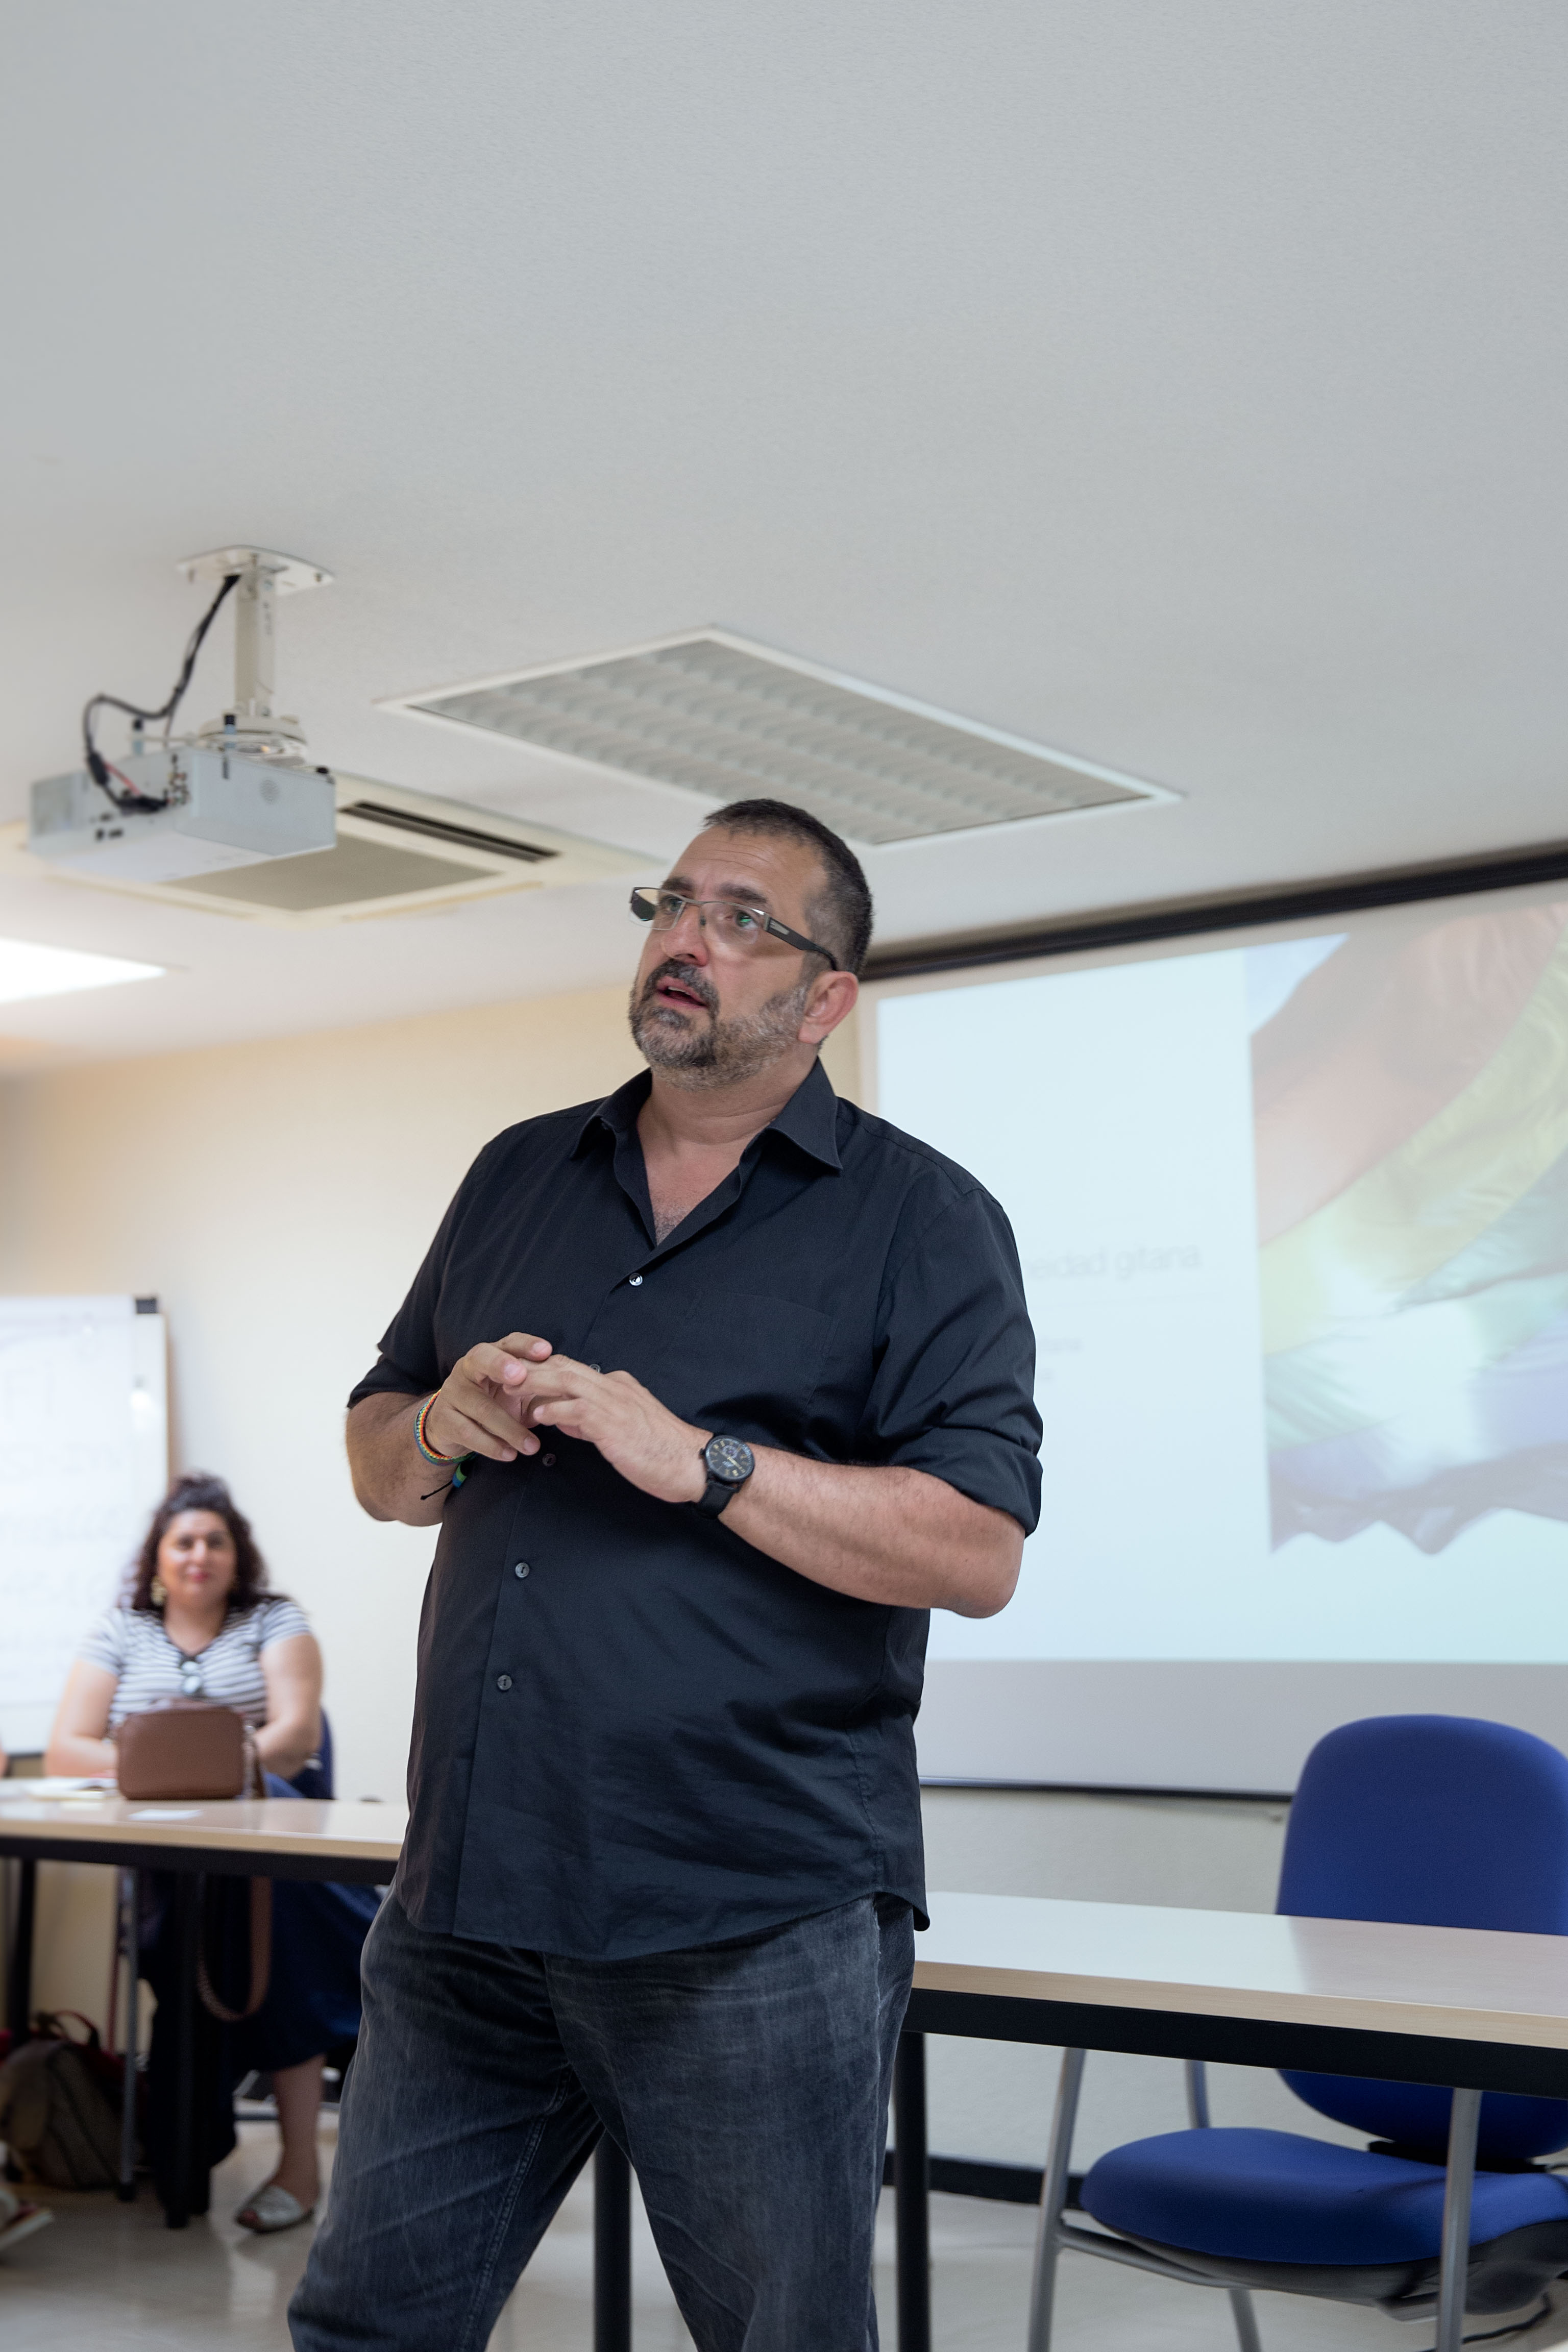 Iñaki giving a talk at the Ministry of Health in Madrid, July 2018. Photo by Bex Wade